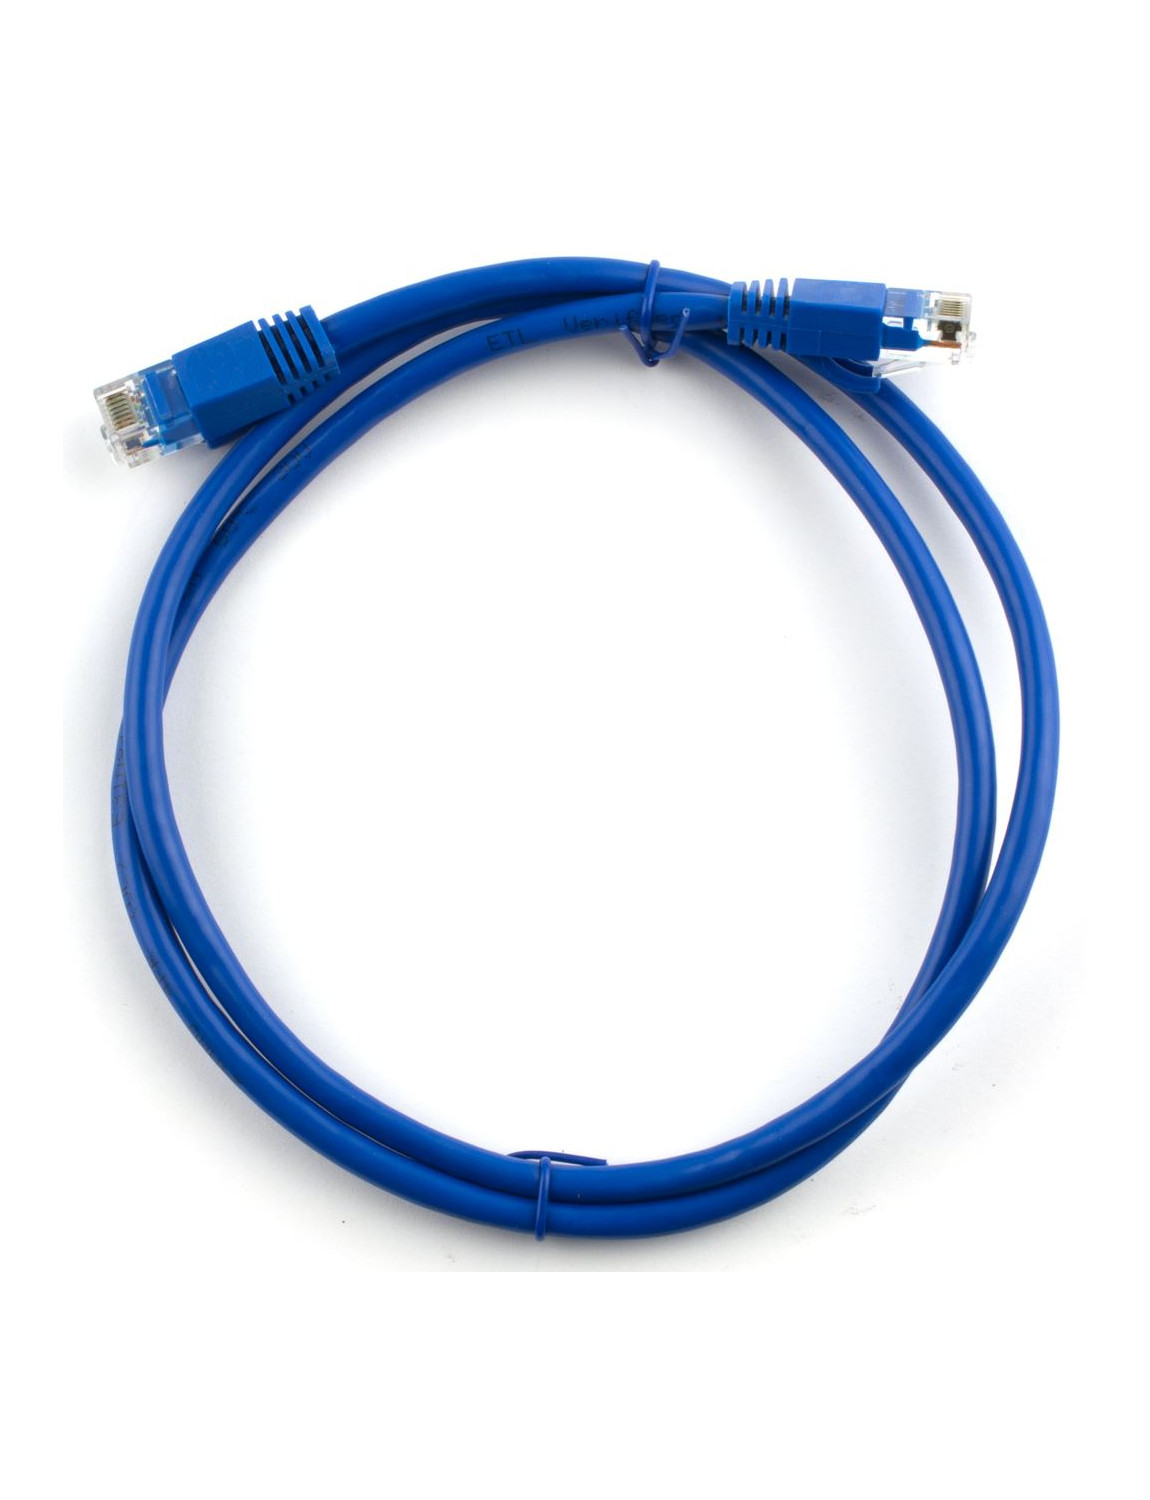 XPCABLE CAT5e UTP PATCH CORD 1M